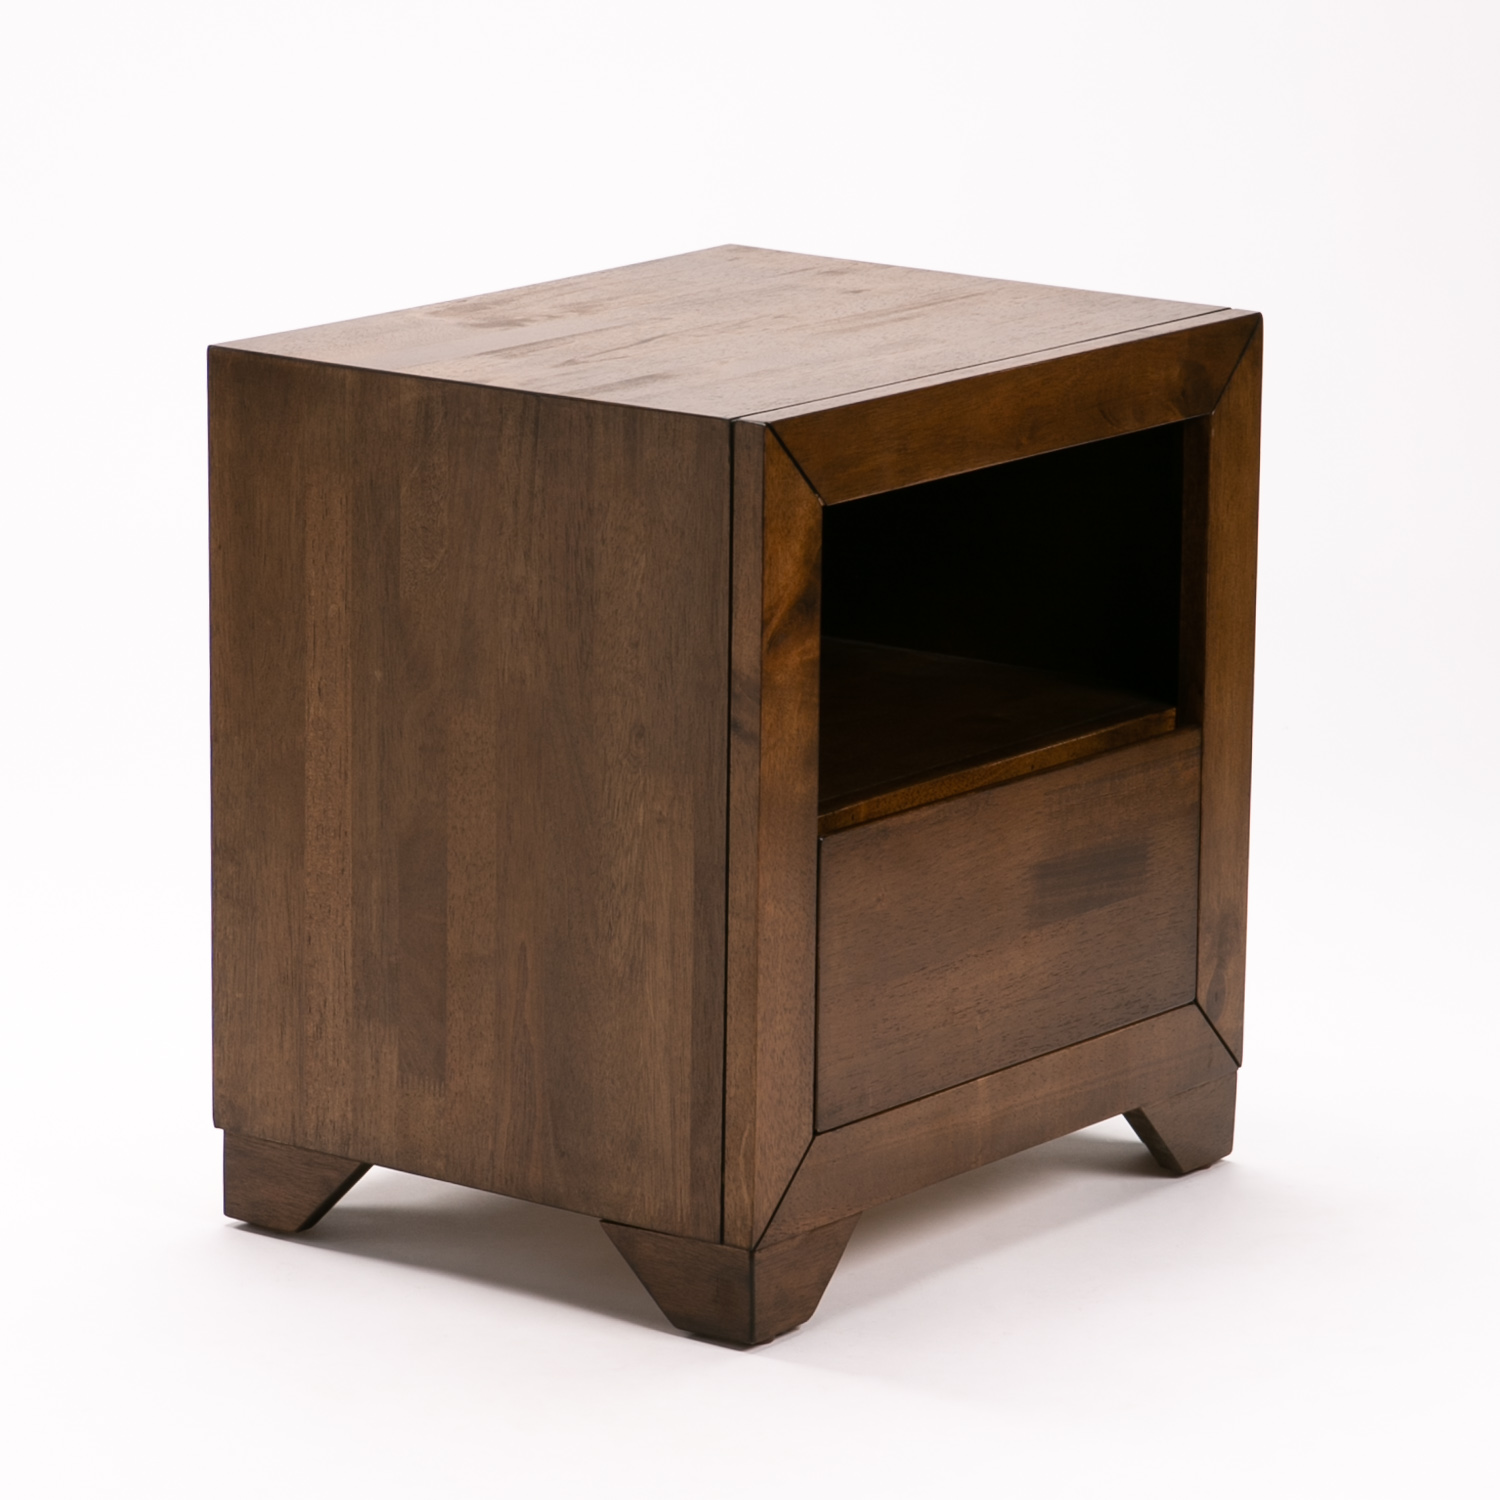 YORK 1 DRAWER PEDESTAL